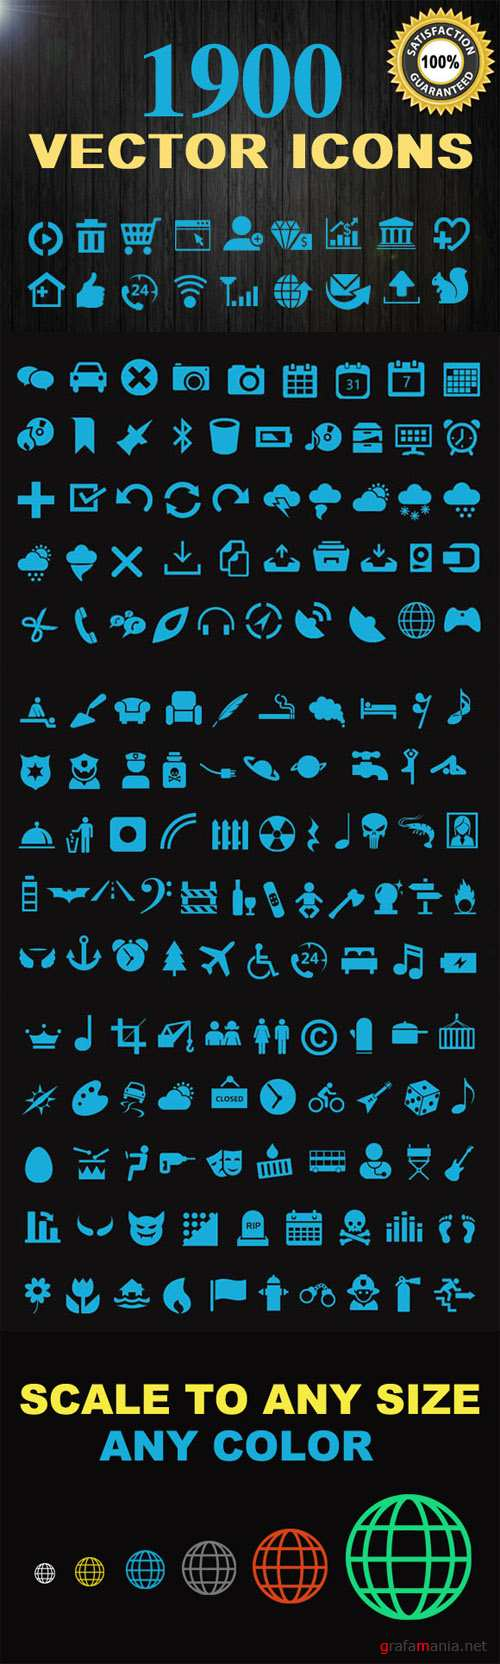 1900 Vector Icons - CreativeMarket